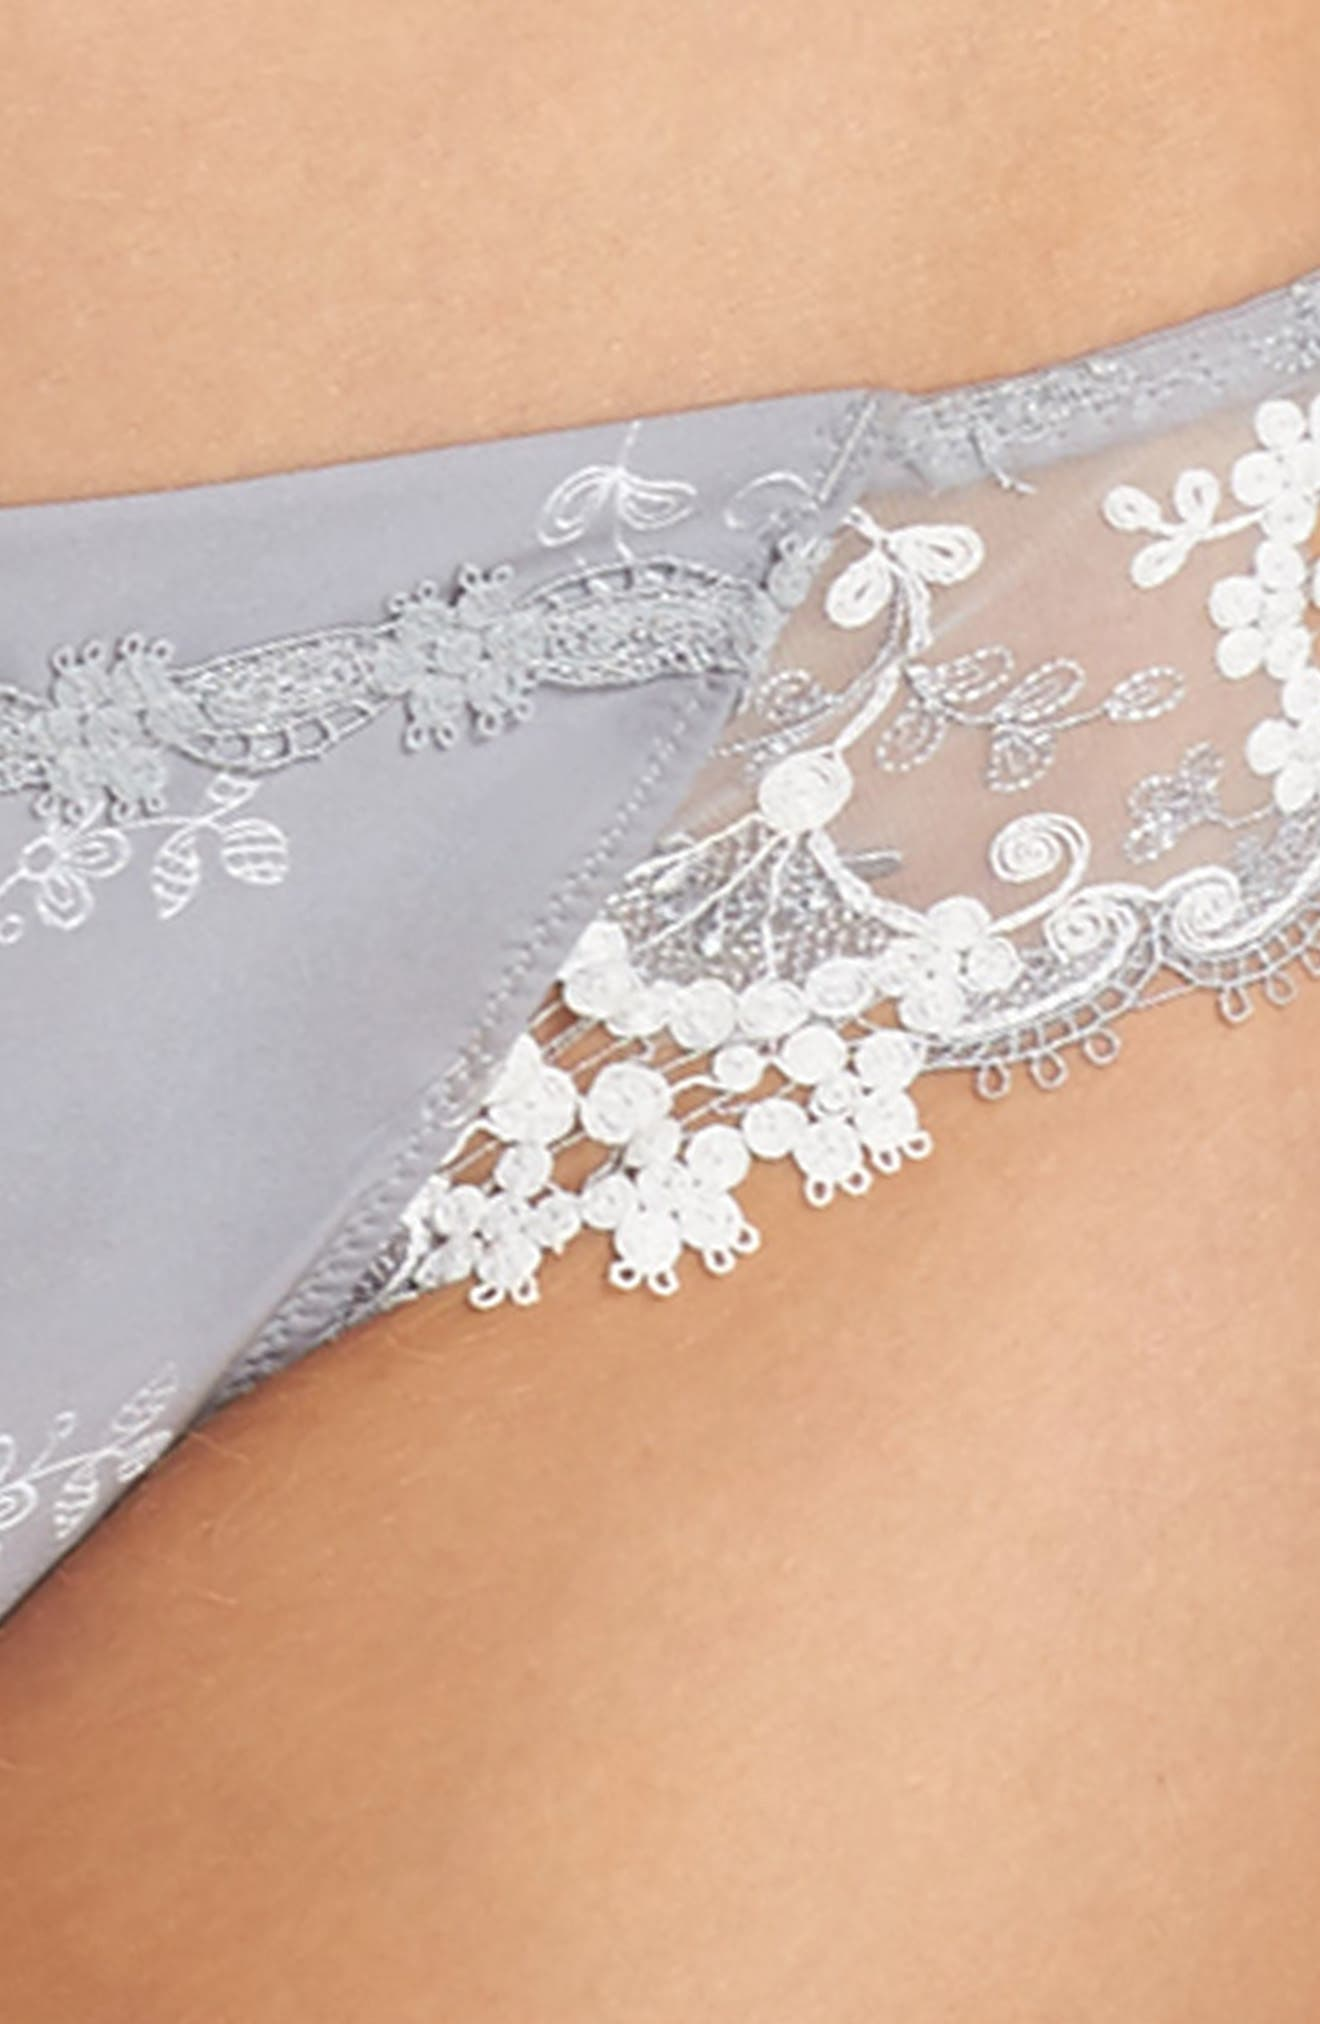 'Wish' Embroidered Tanga Thong,                             Alternate thumbnail 4, color,                             020